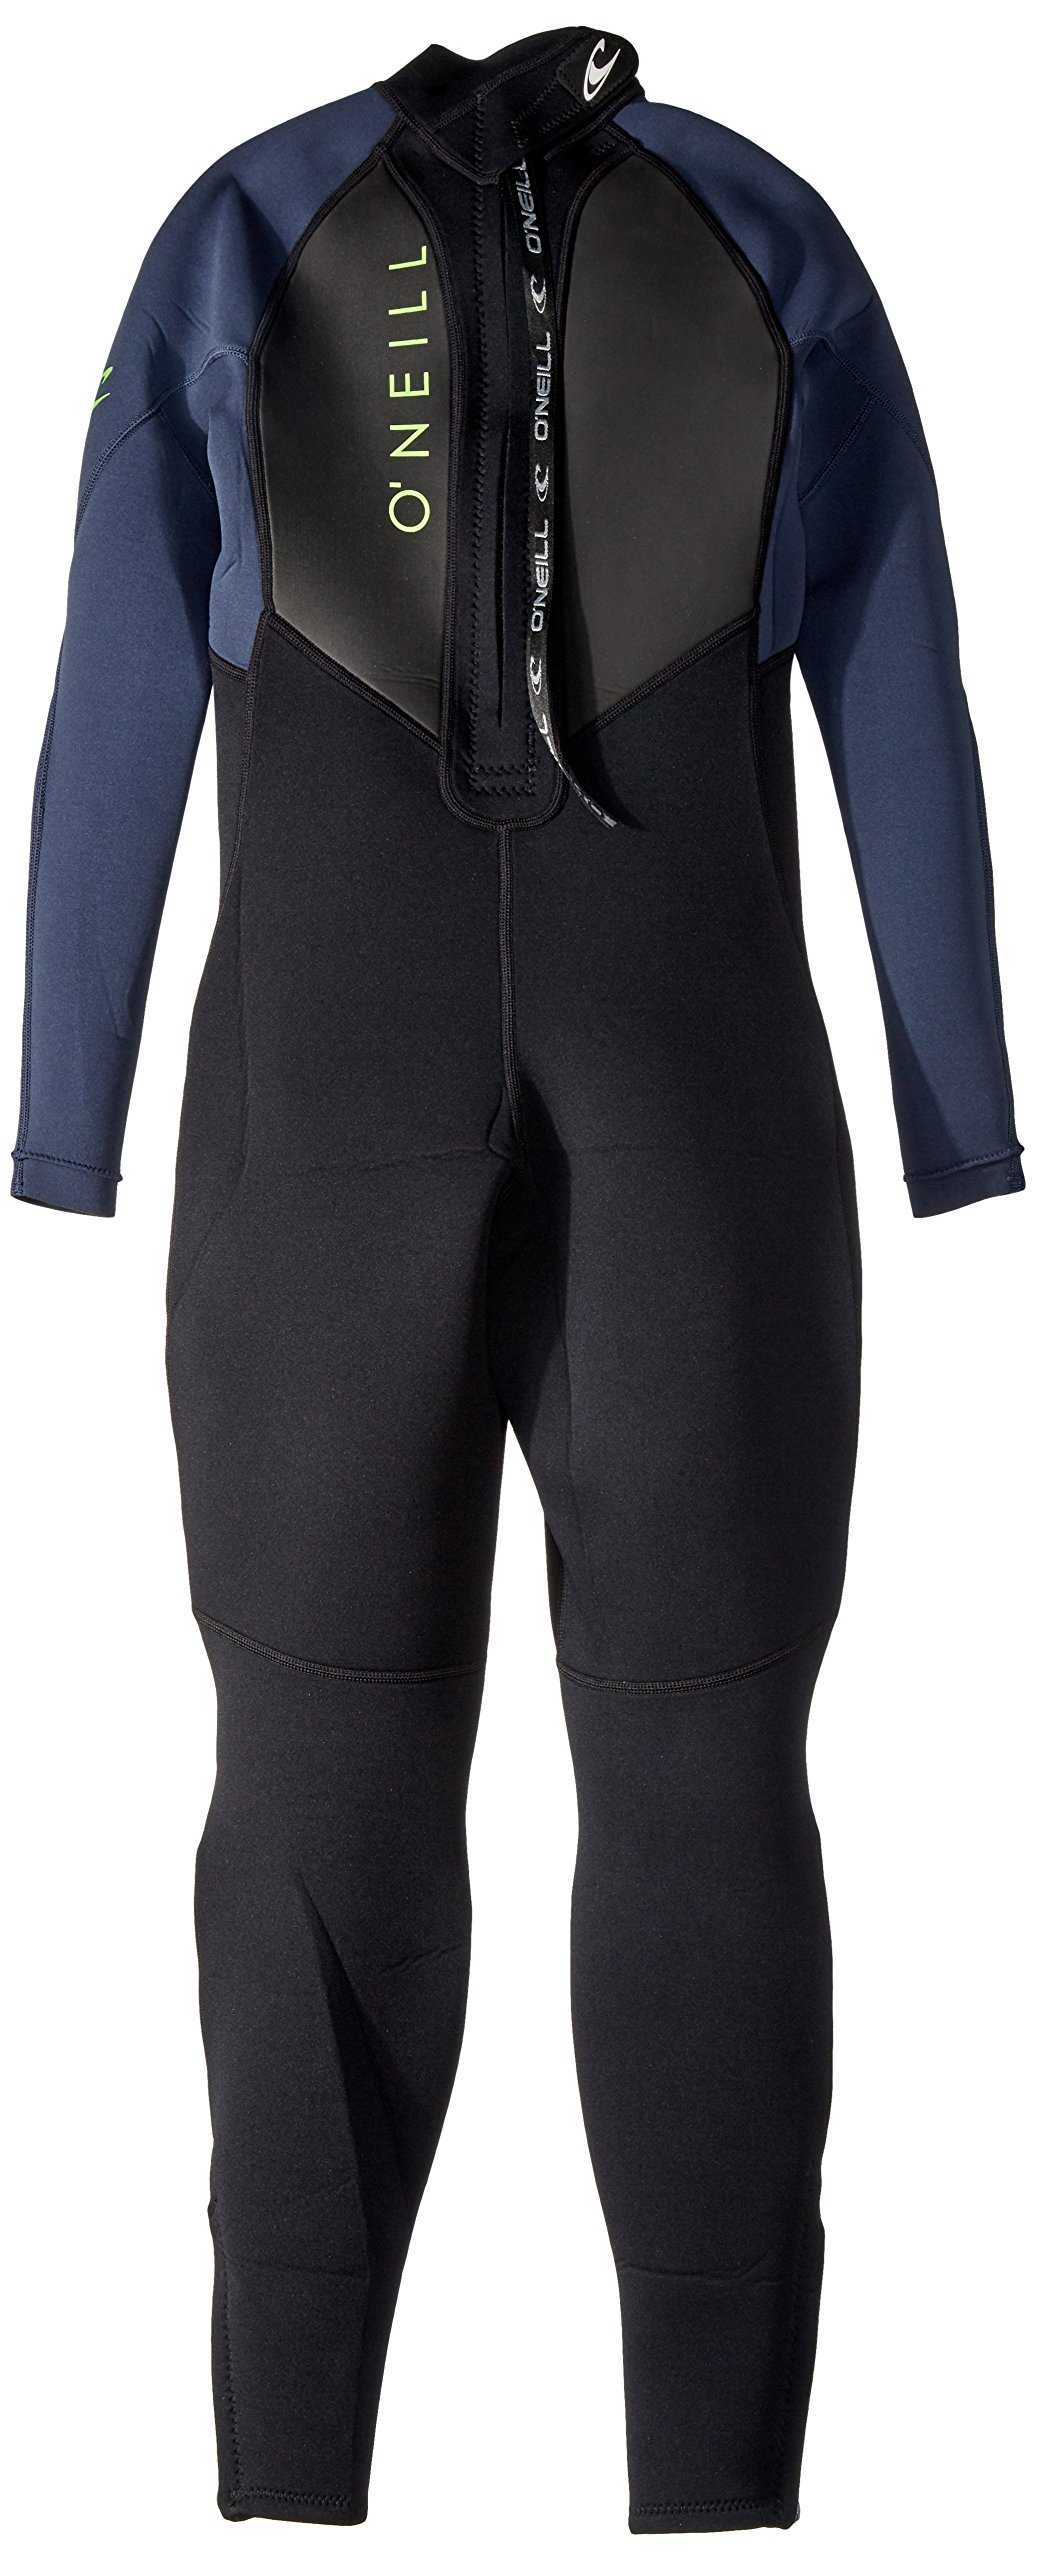 O'Neill Youth Reactor-2 3/2mm Back Zip Full Wetsuit, Black/Slate, 4 by O'Neill Wetsuits (Image #2)